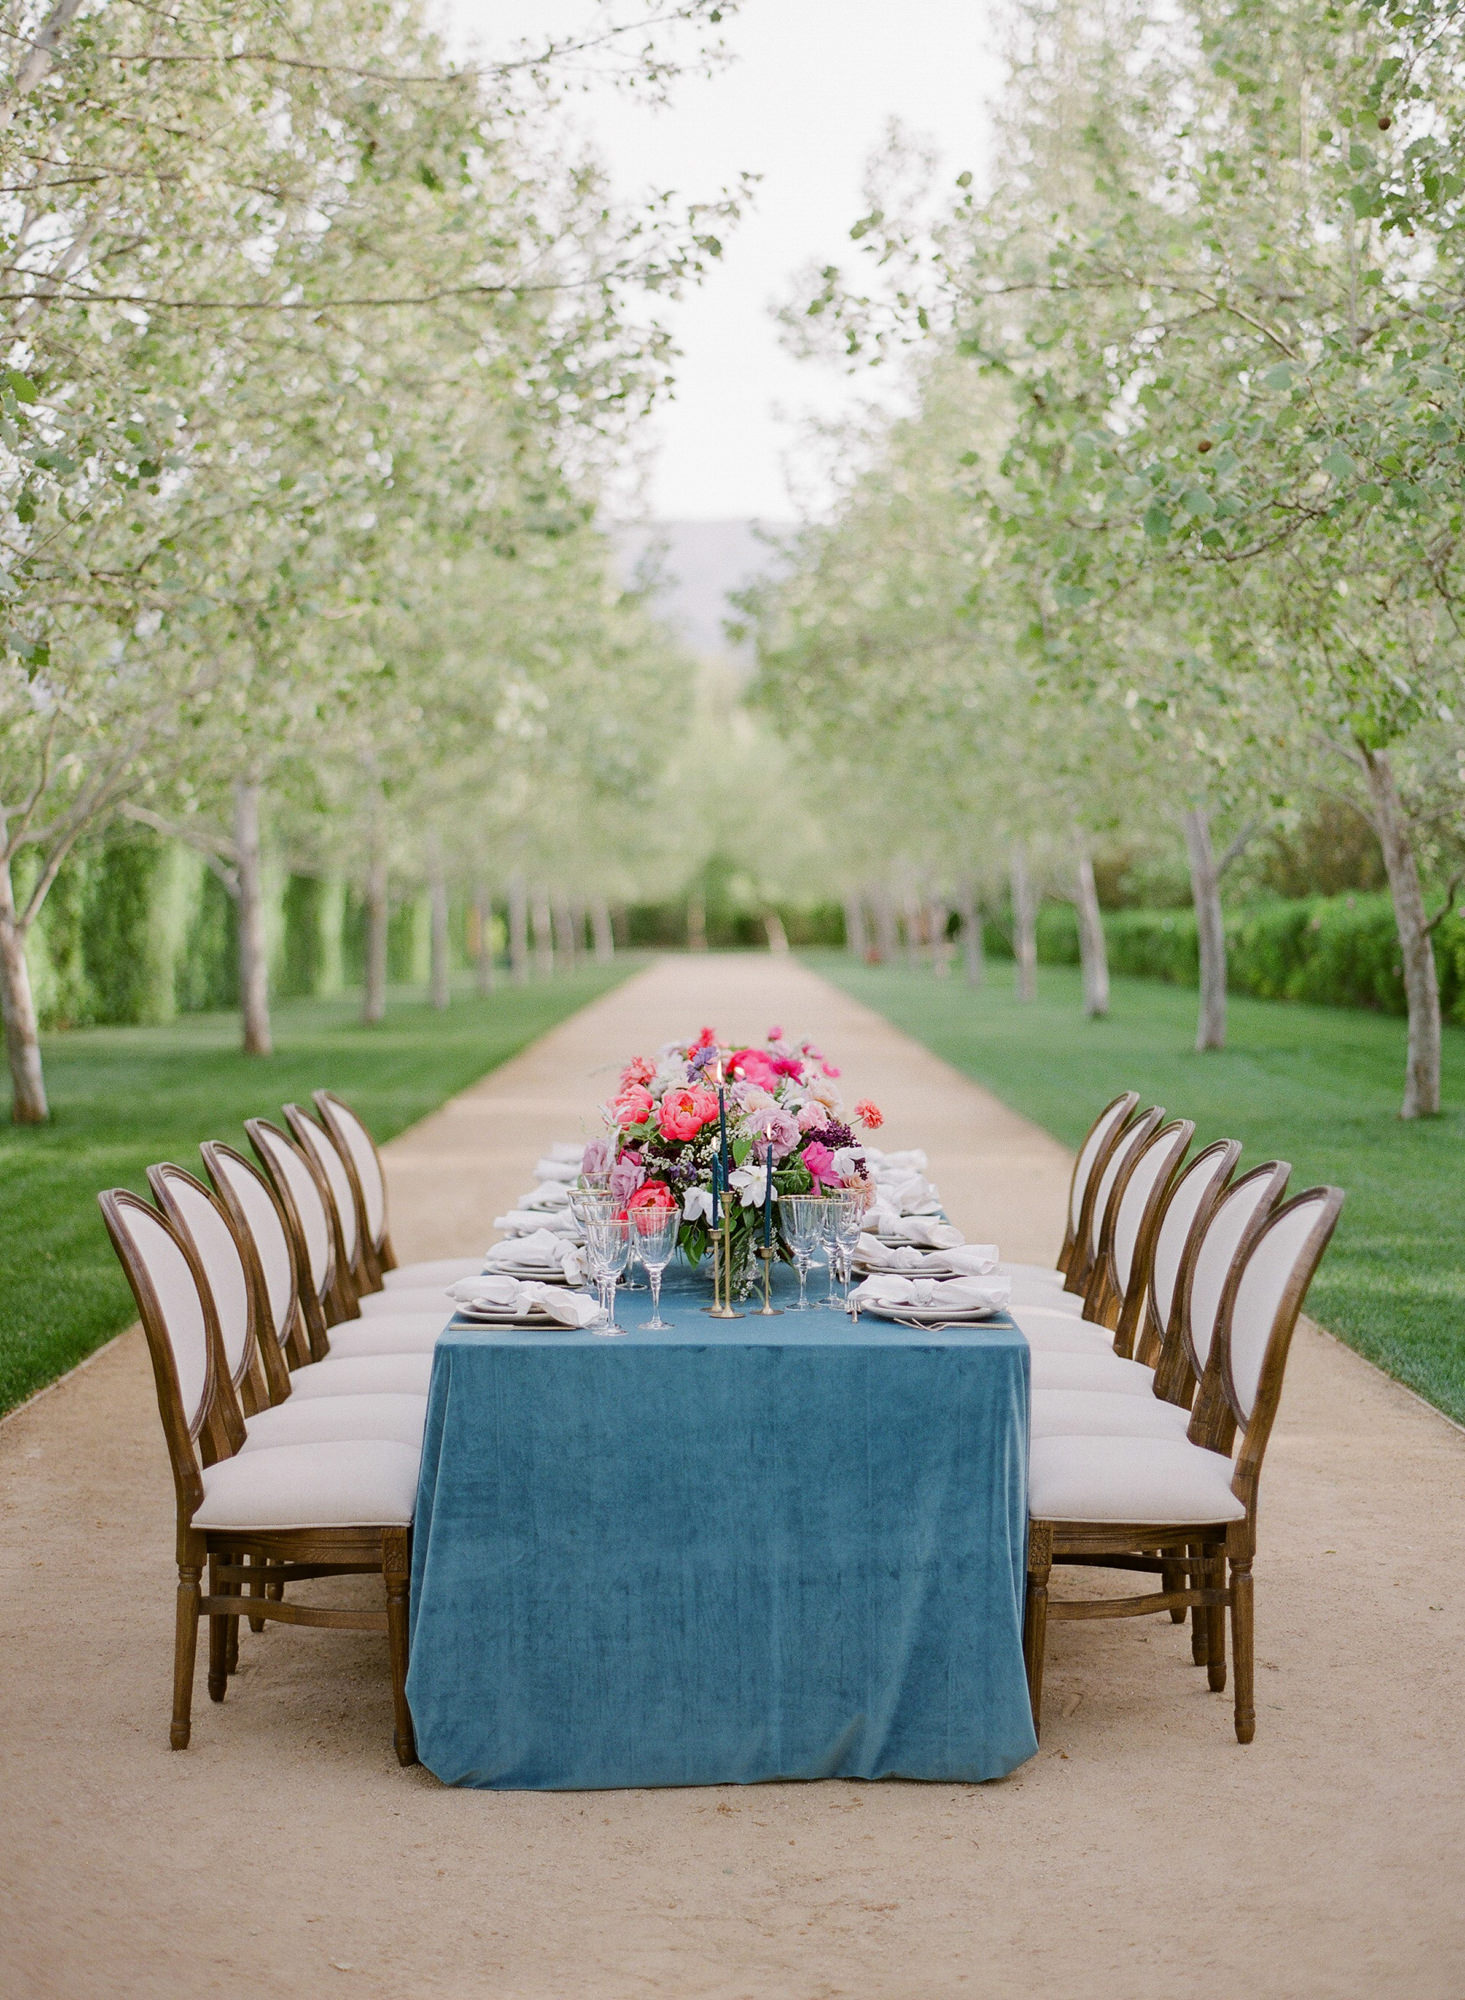 Reception table with blue velvet tablecloth and bright centerpieces  - Greg Finck Photography